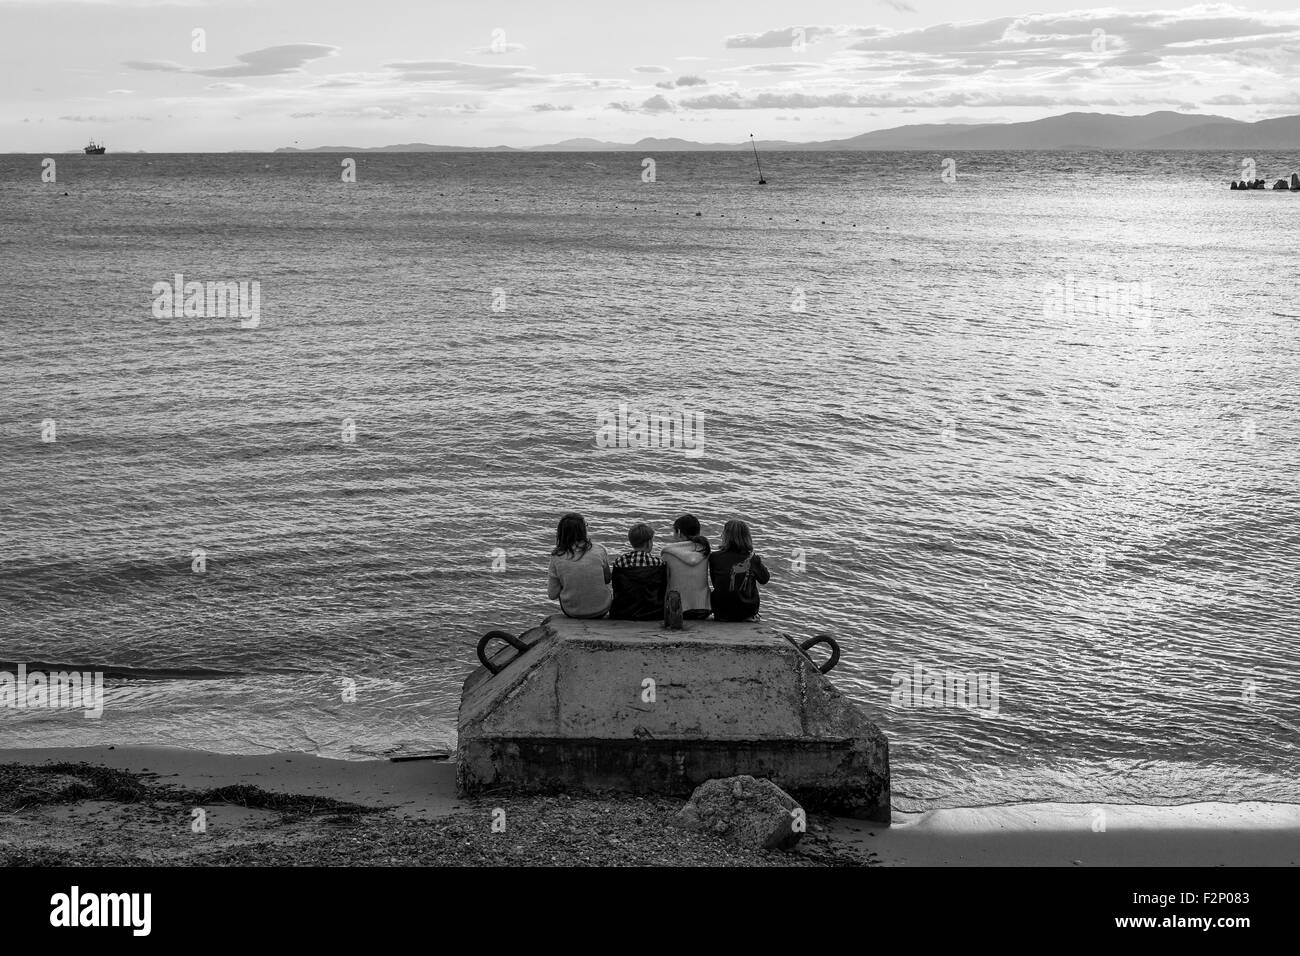 Friends Watching the Sunset at the Beach - Stock Image